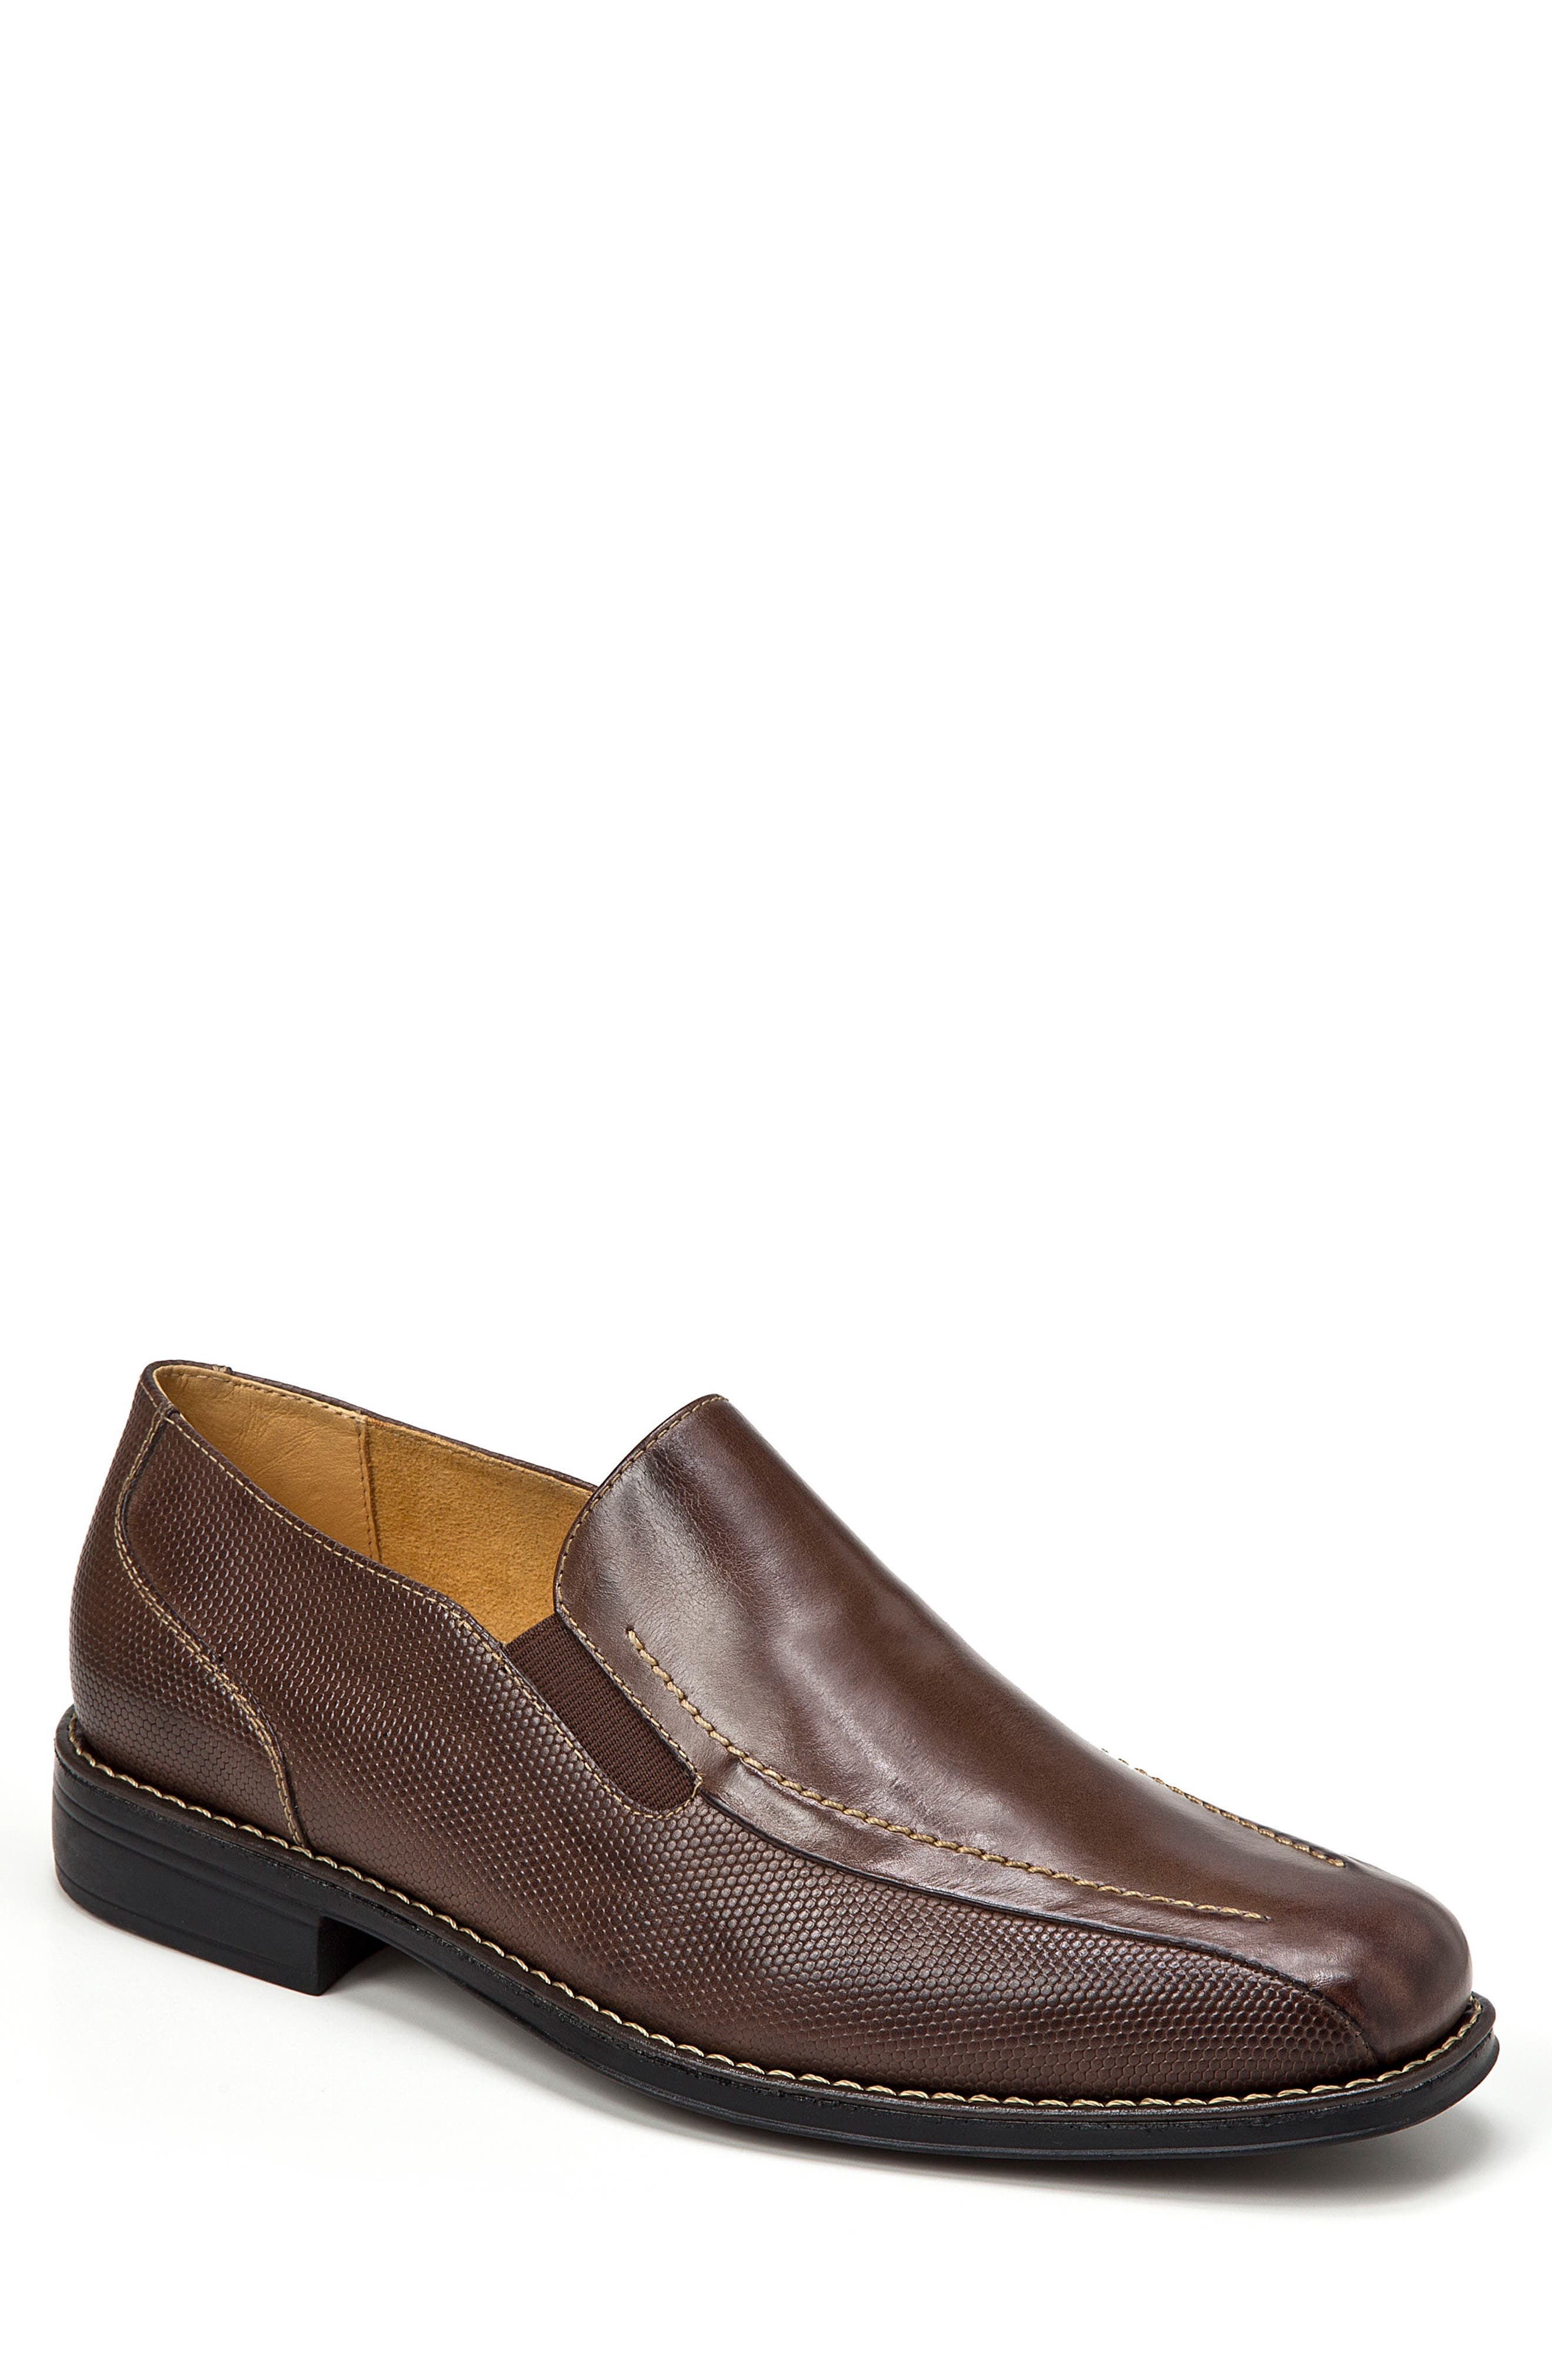 Enzo Venetian Loafer,                         Main,                         color, Brown